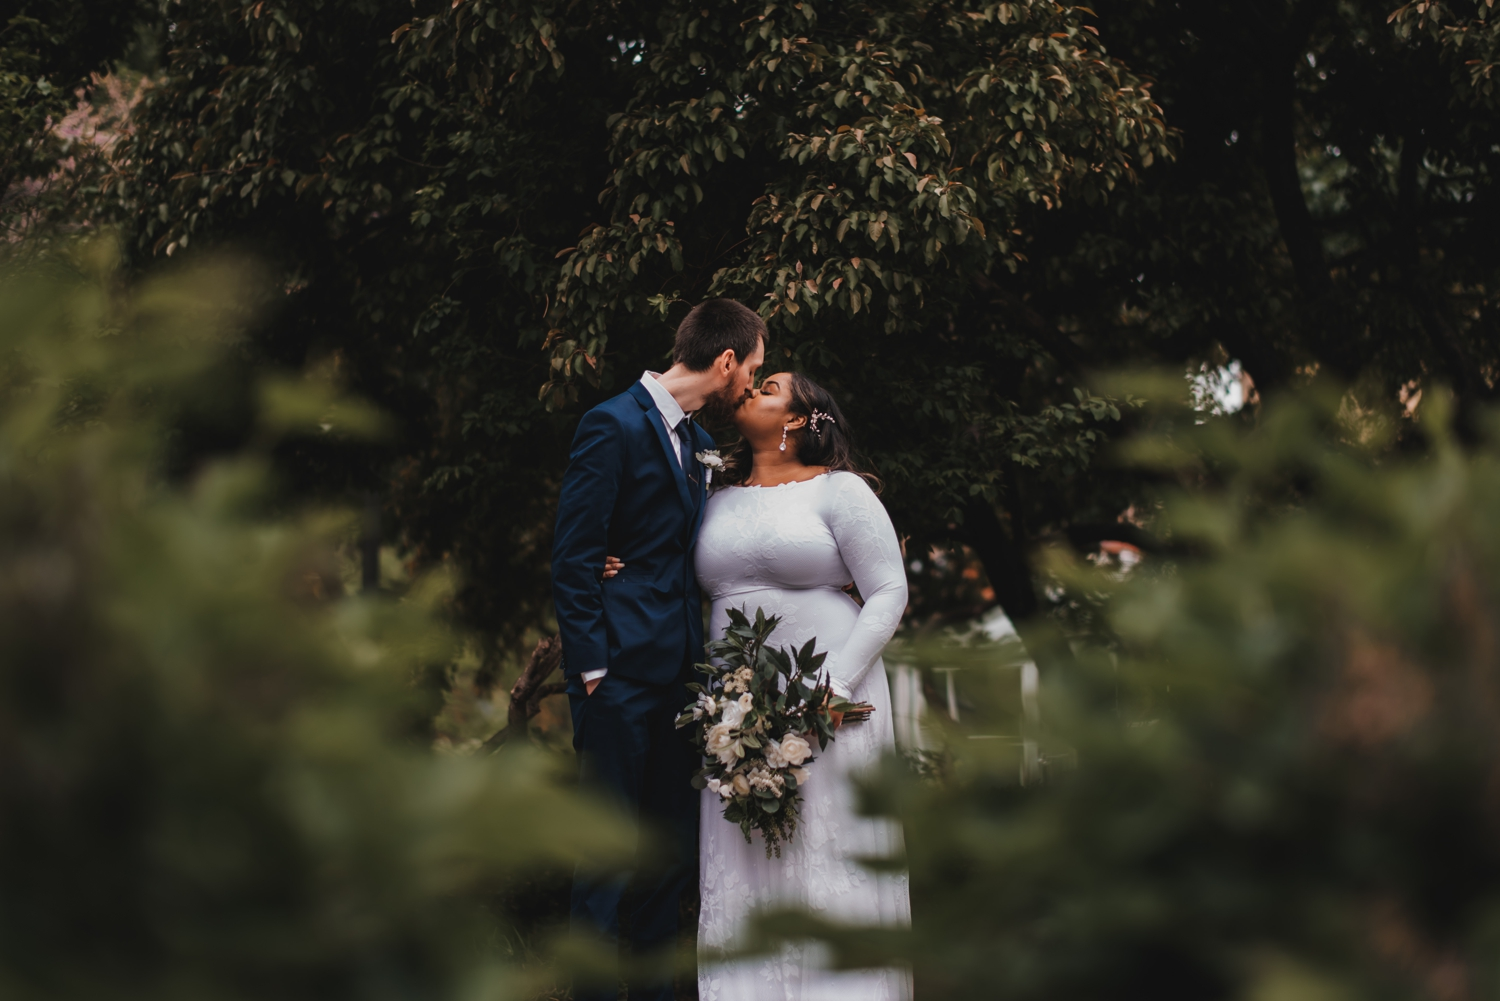 Chicago Elopement photographer - The Adamkovi, bride and groom kissing